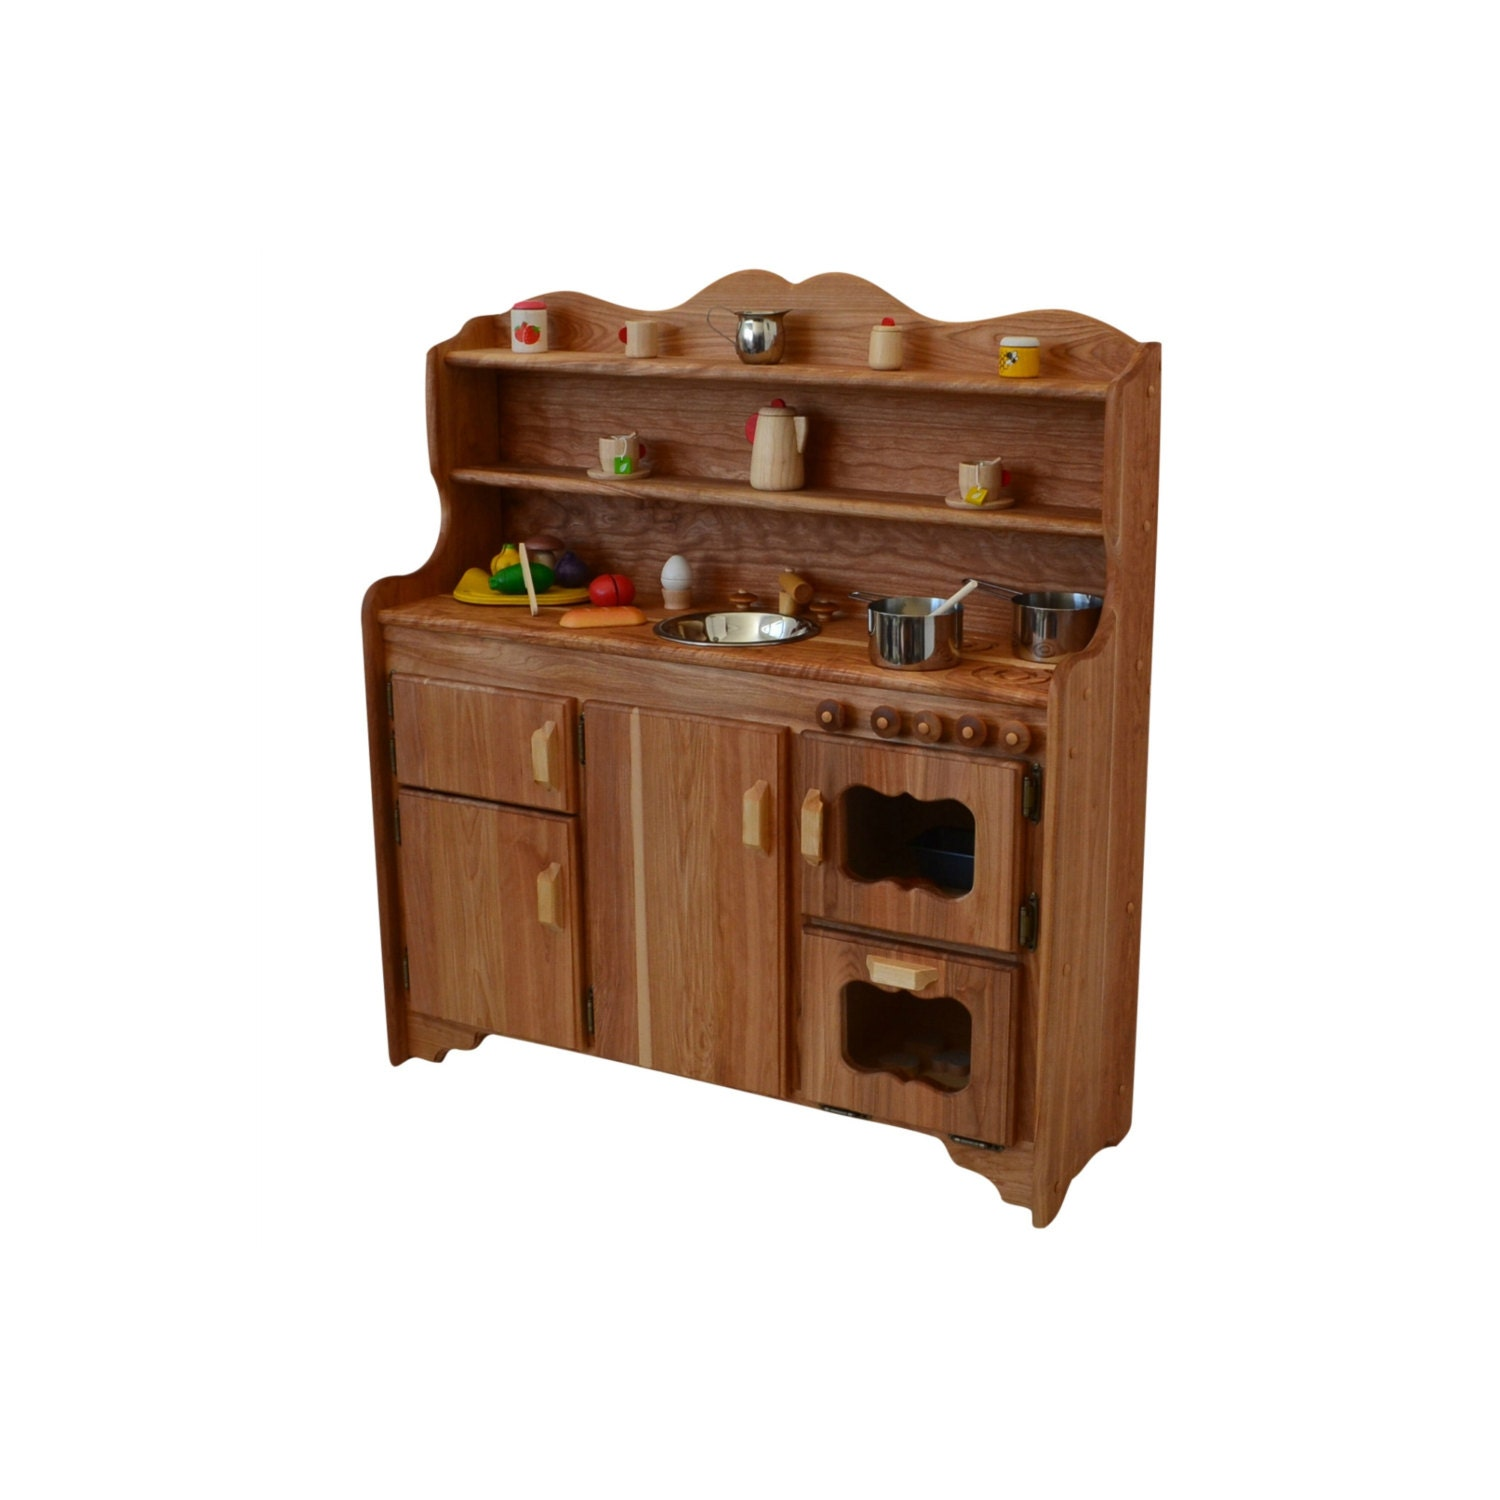 Waldorf wooden toy kitchen hardwood play stove